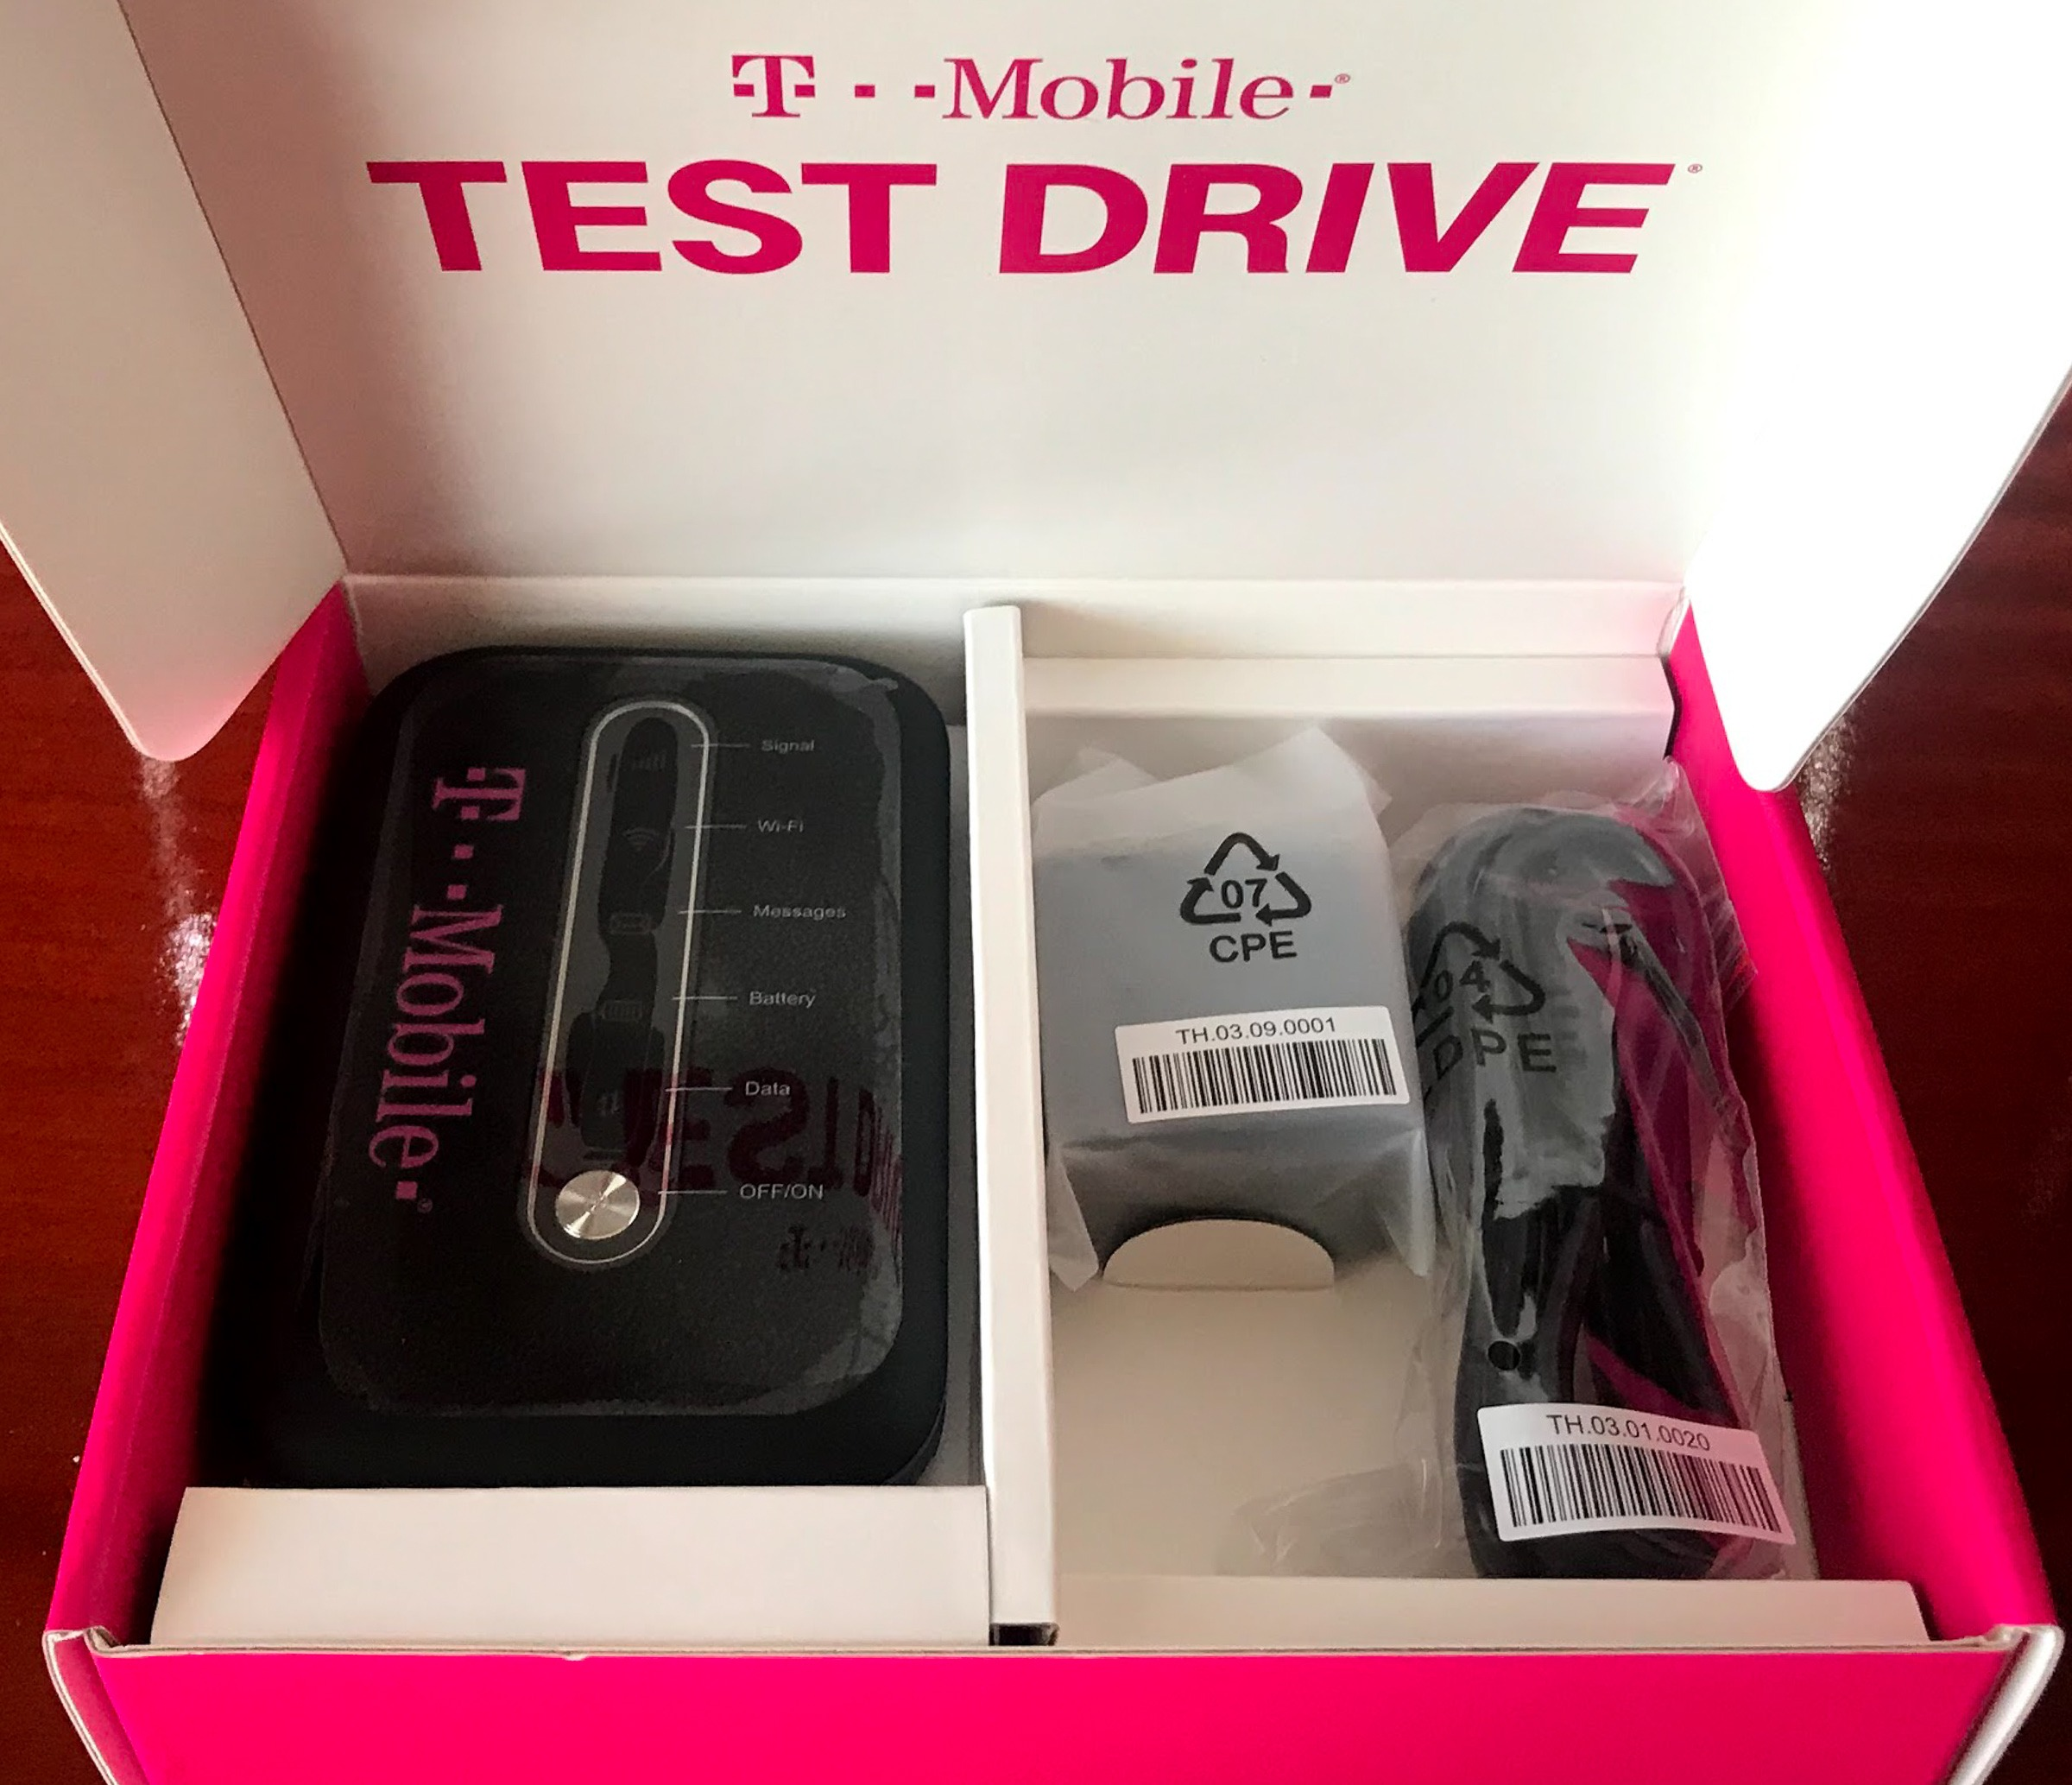 T-Mobile Test Drive, try out T-Mobile's network on them - Panbo